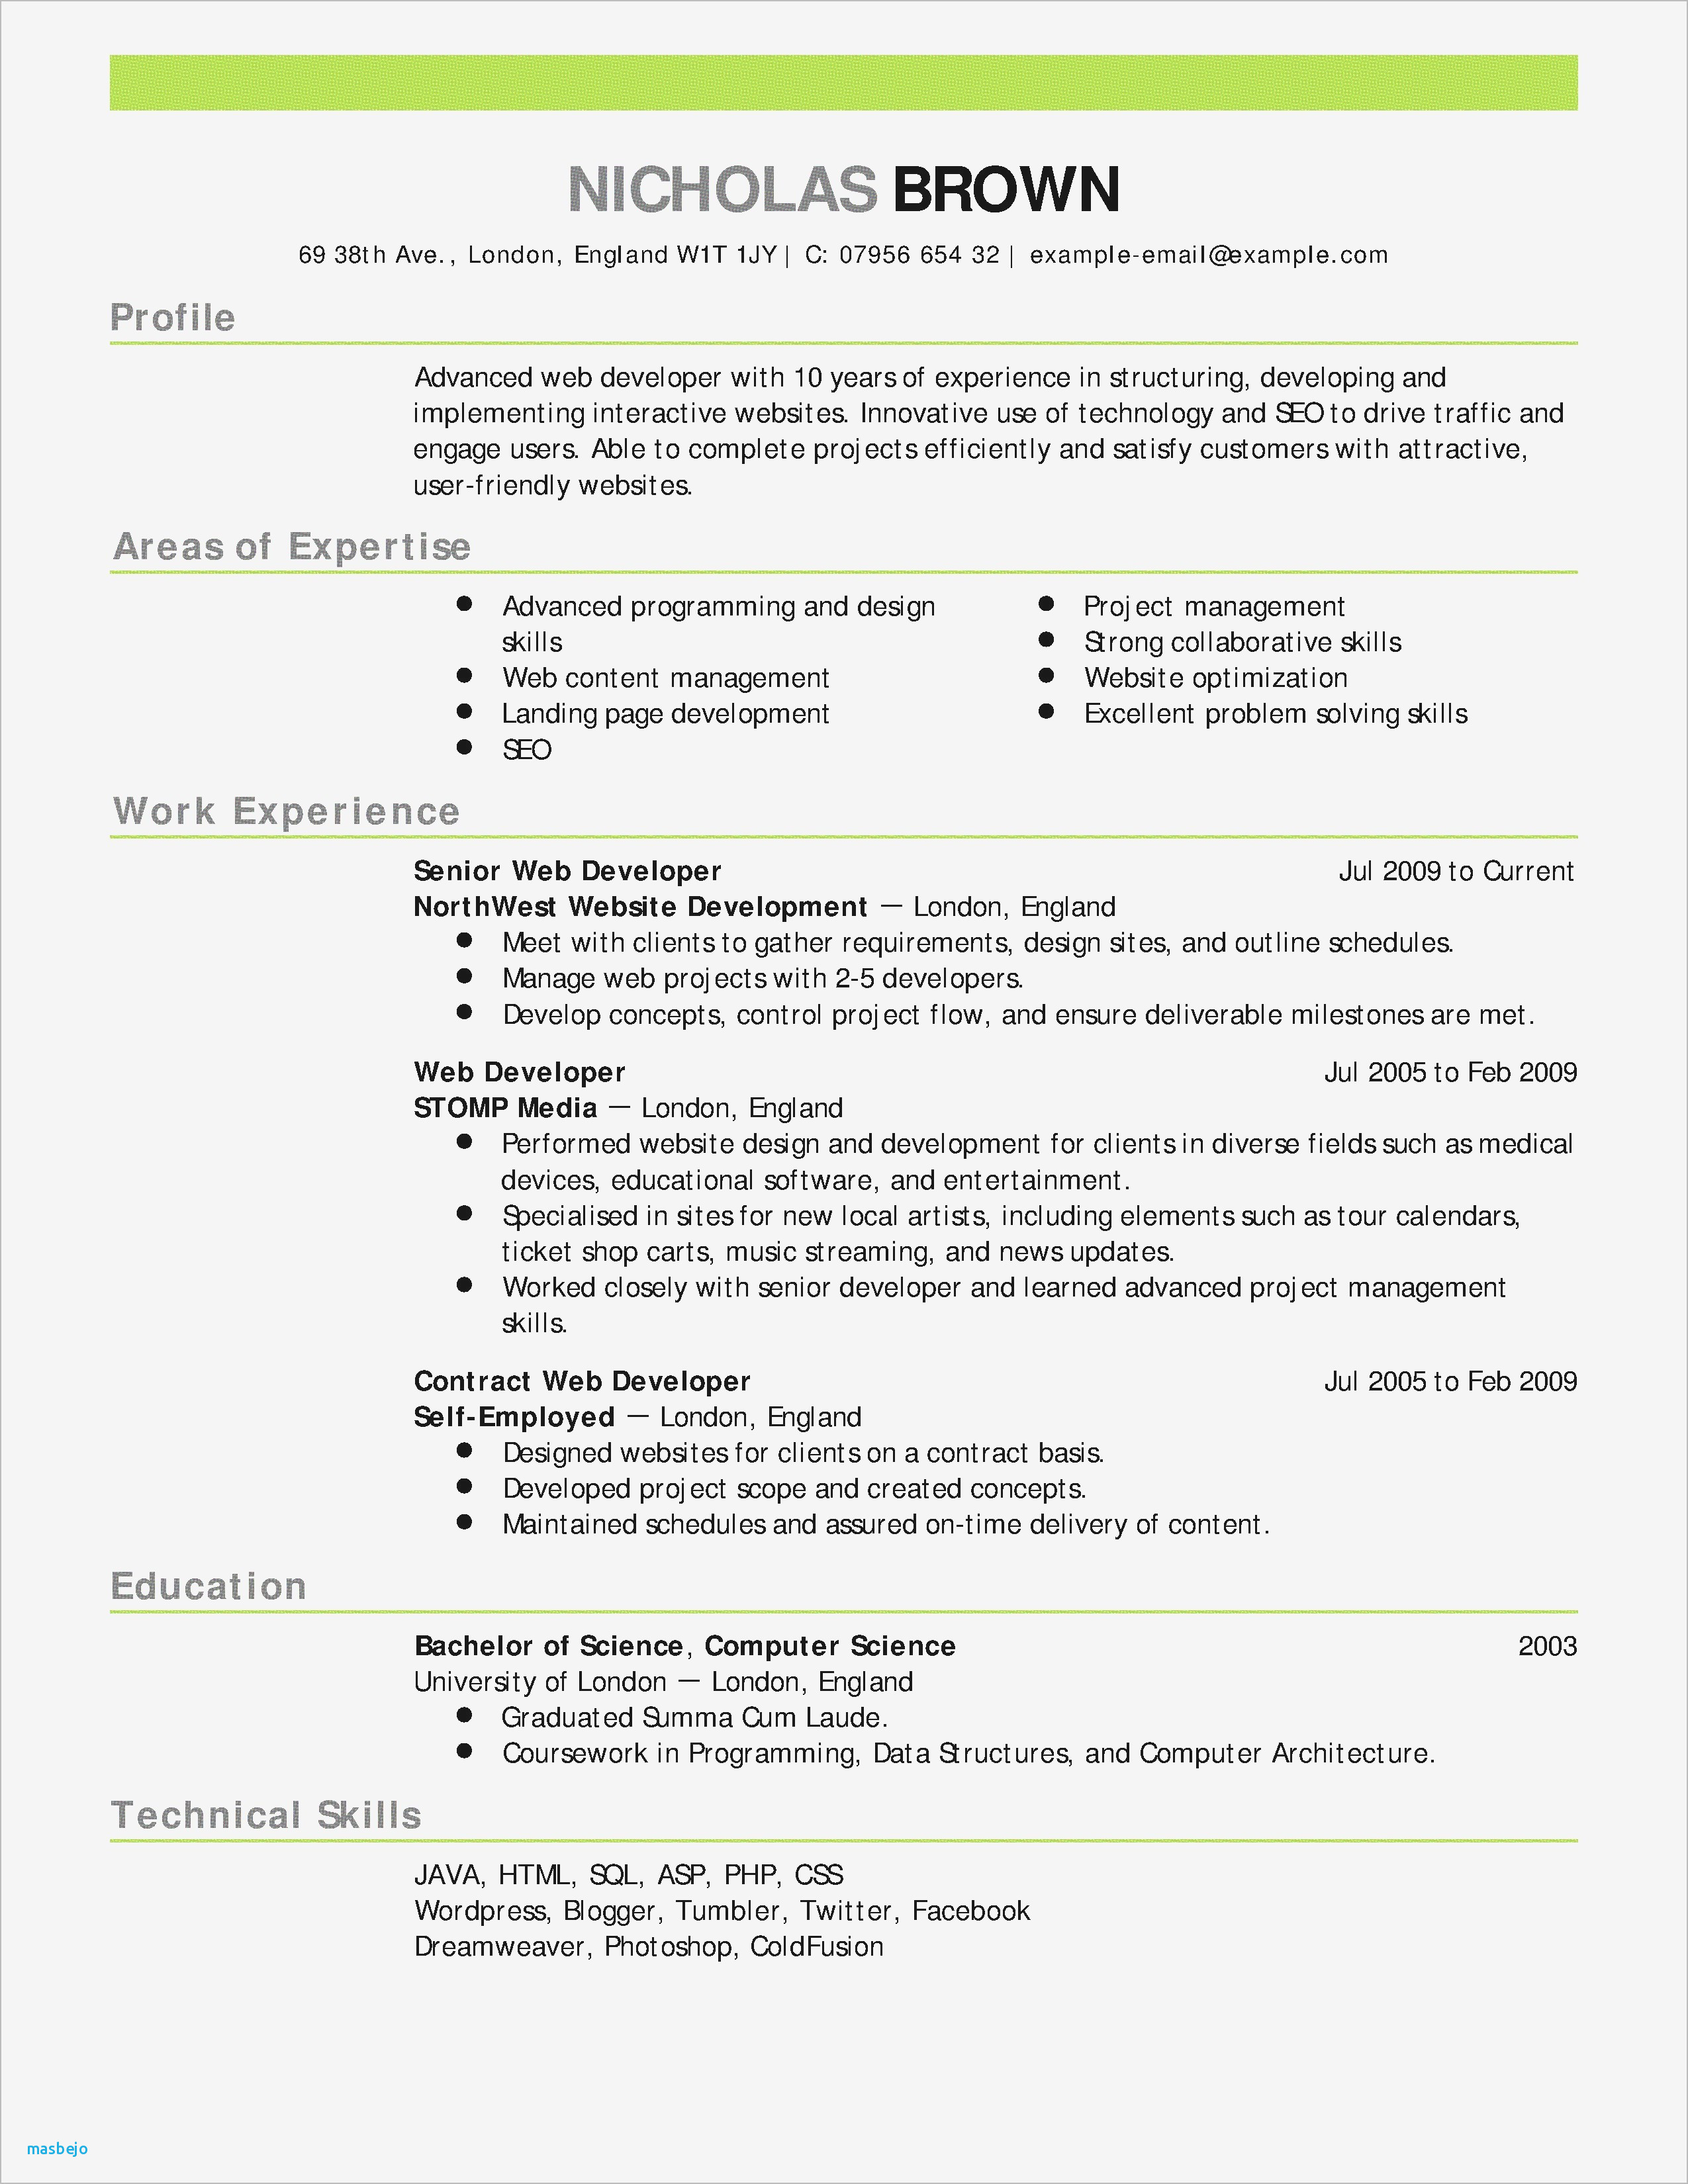 Resume and Cover Letter Review - Resume Review Service Resume